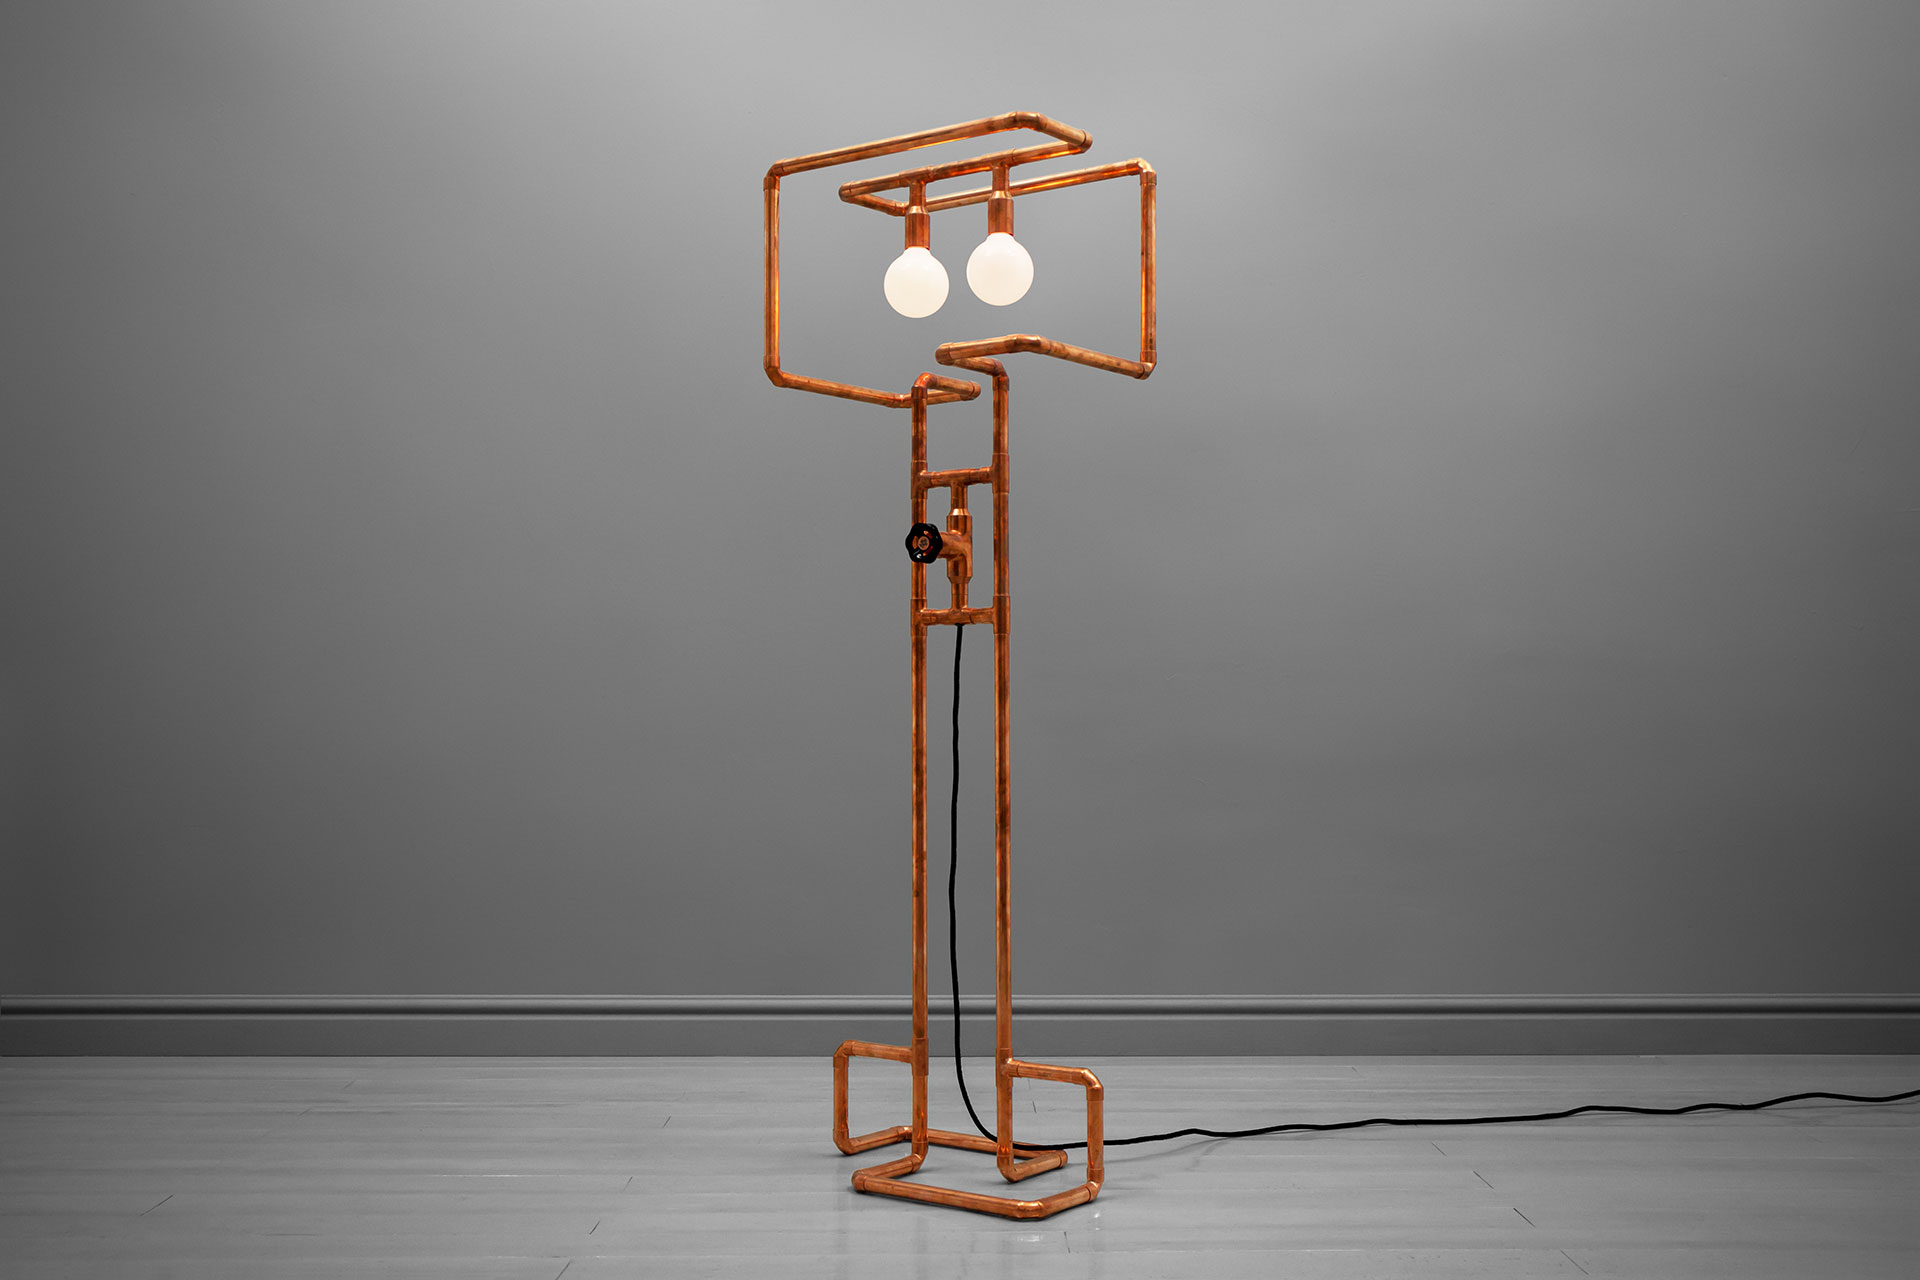 Unique dimmable floor lamp in trendy copper or modern brass inspired by industrial design